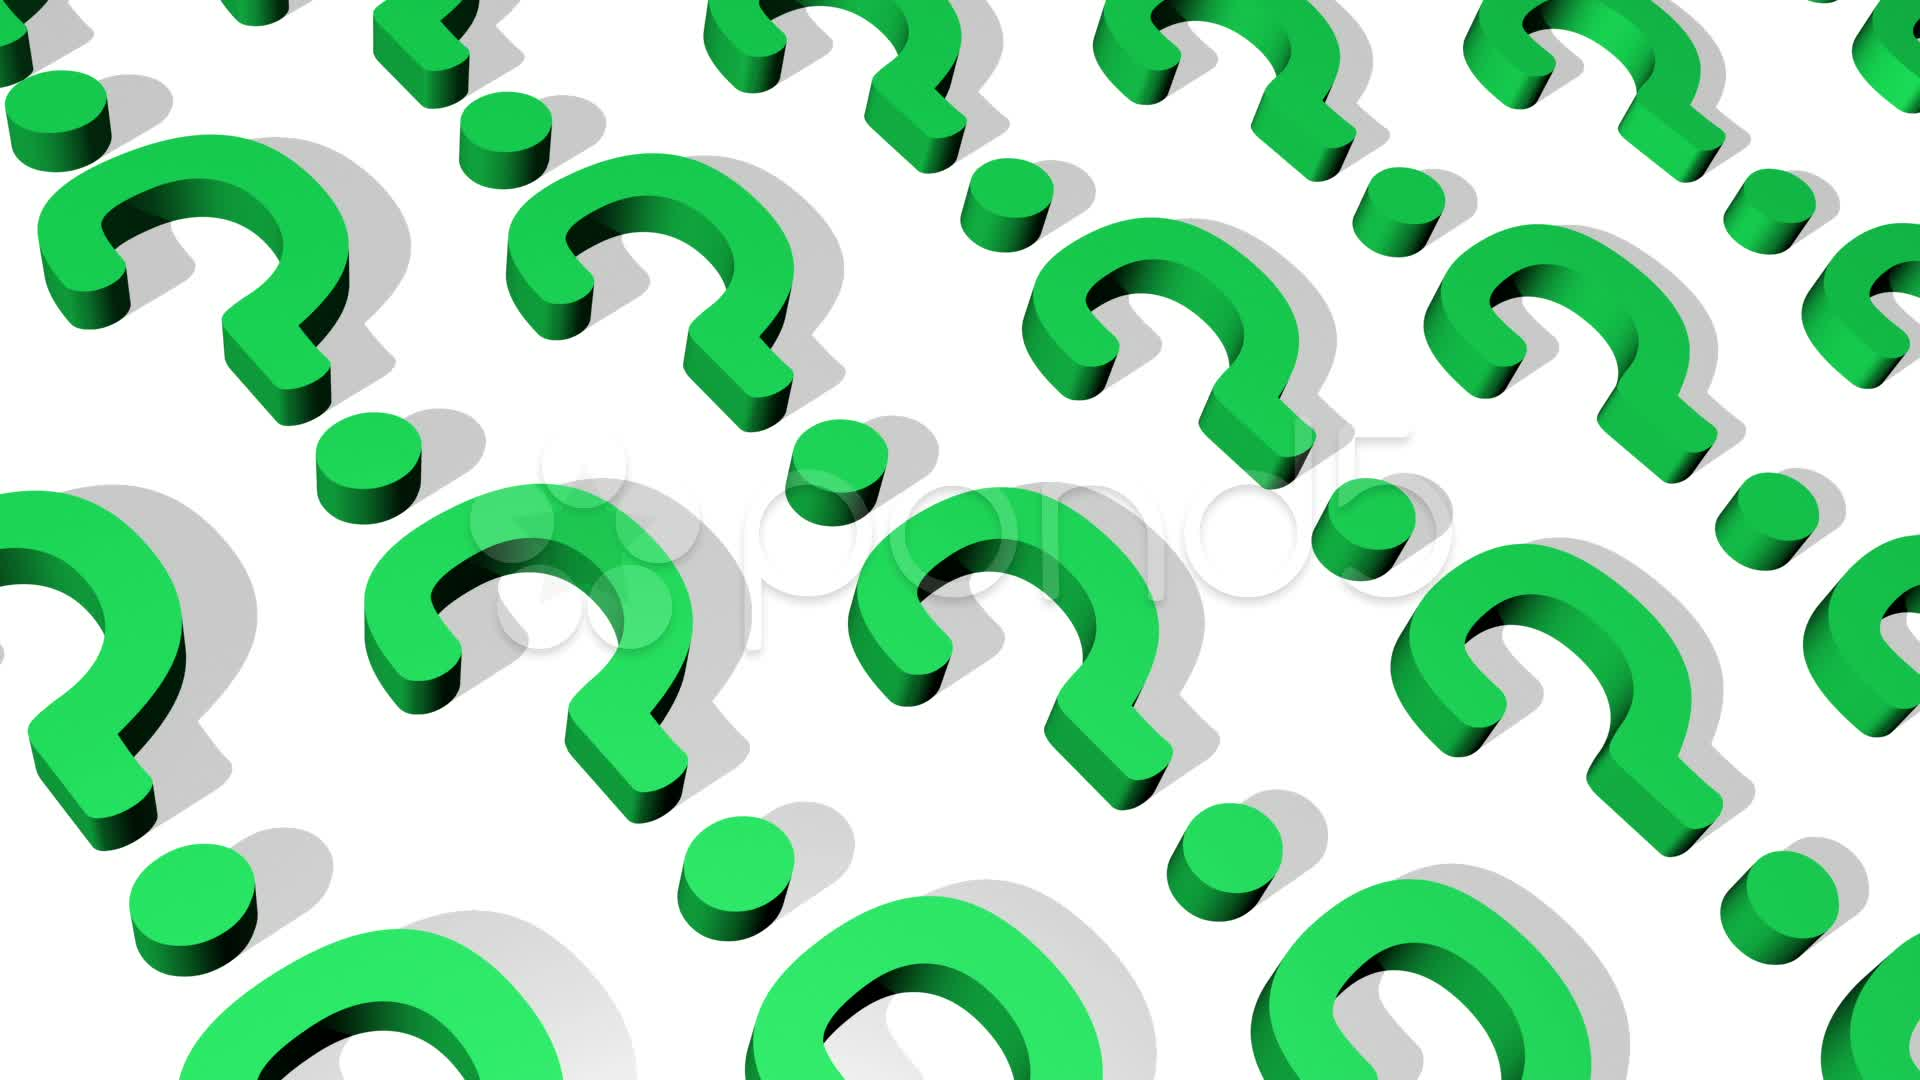 Green Question Marks Mark Loop Image Backgrounds For Powerpoint Templates